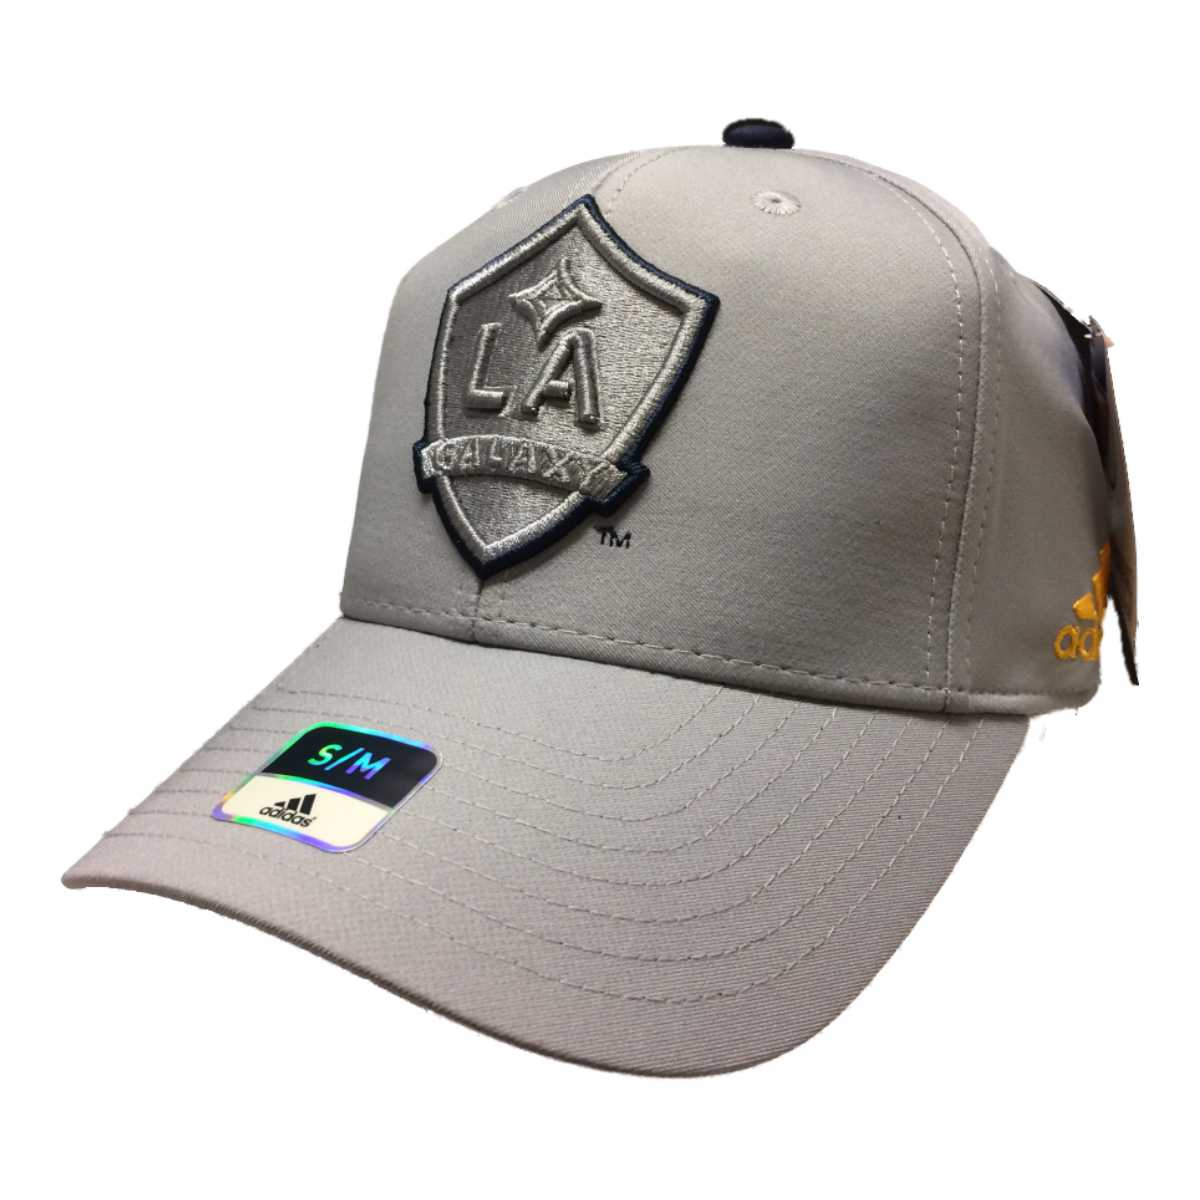 Details about Los Angeles Galaxy Adidas SuperFlex Structured Fitted  Baseball Hat Cap (S M) f7e867b2456